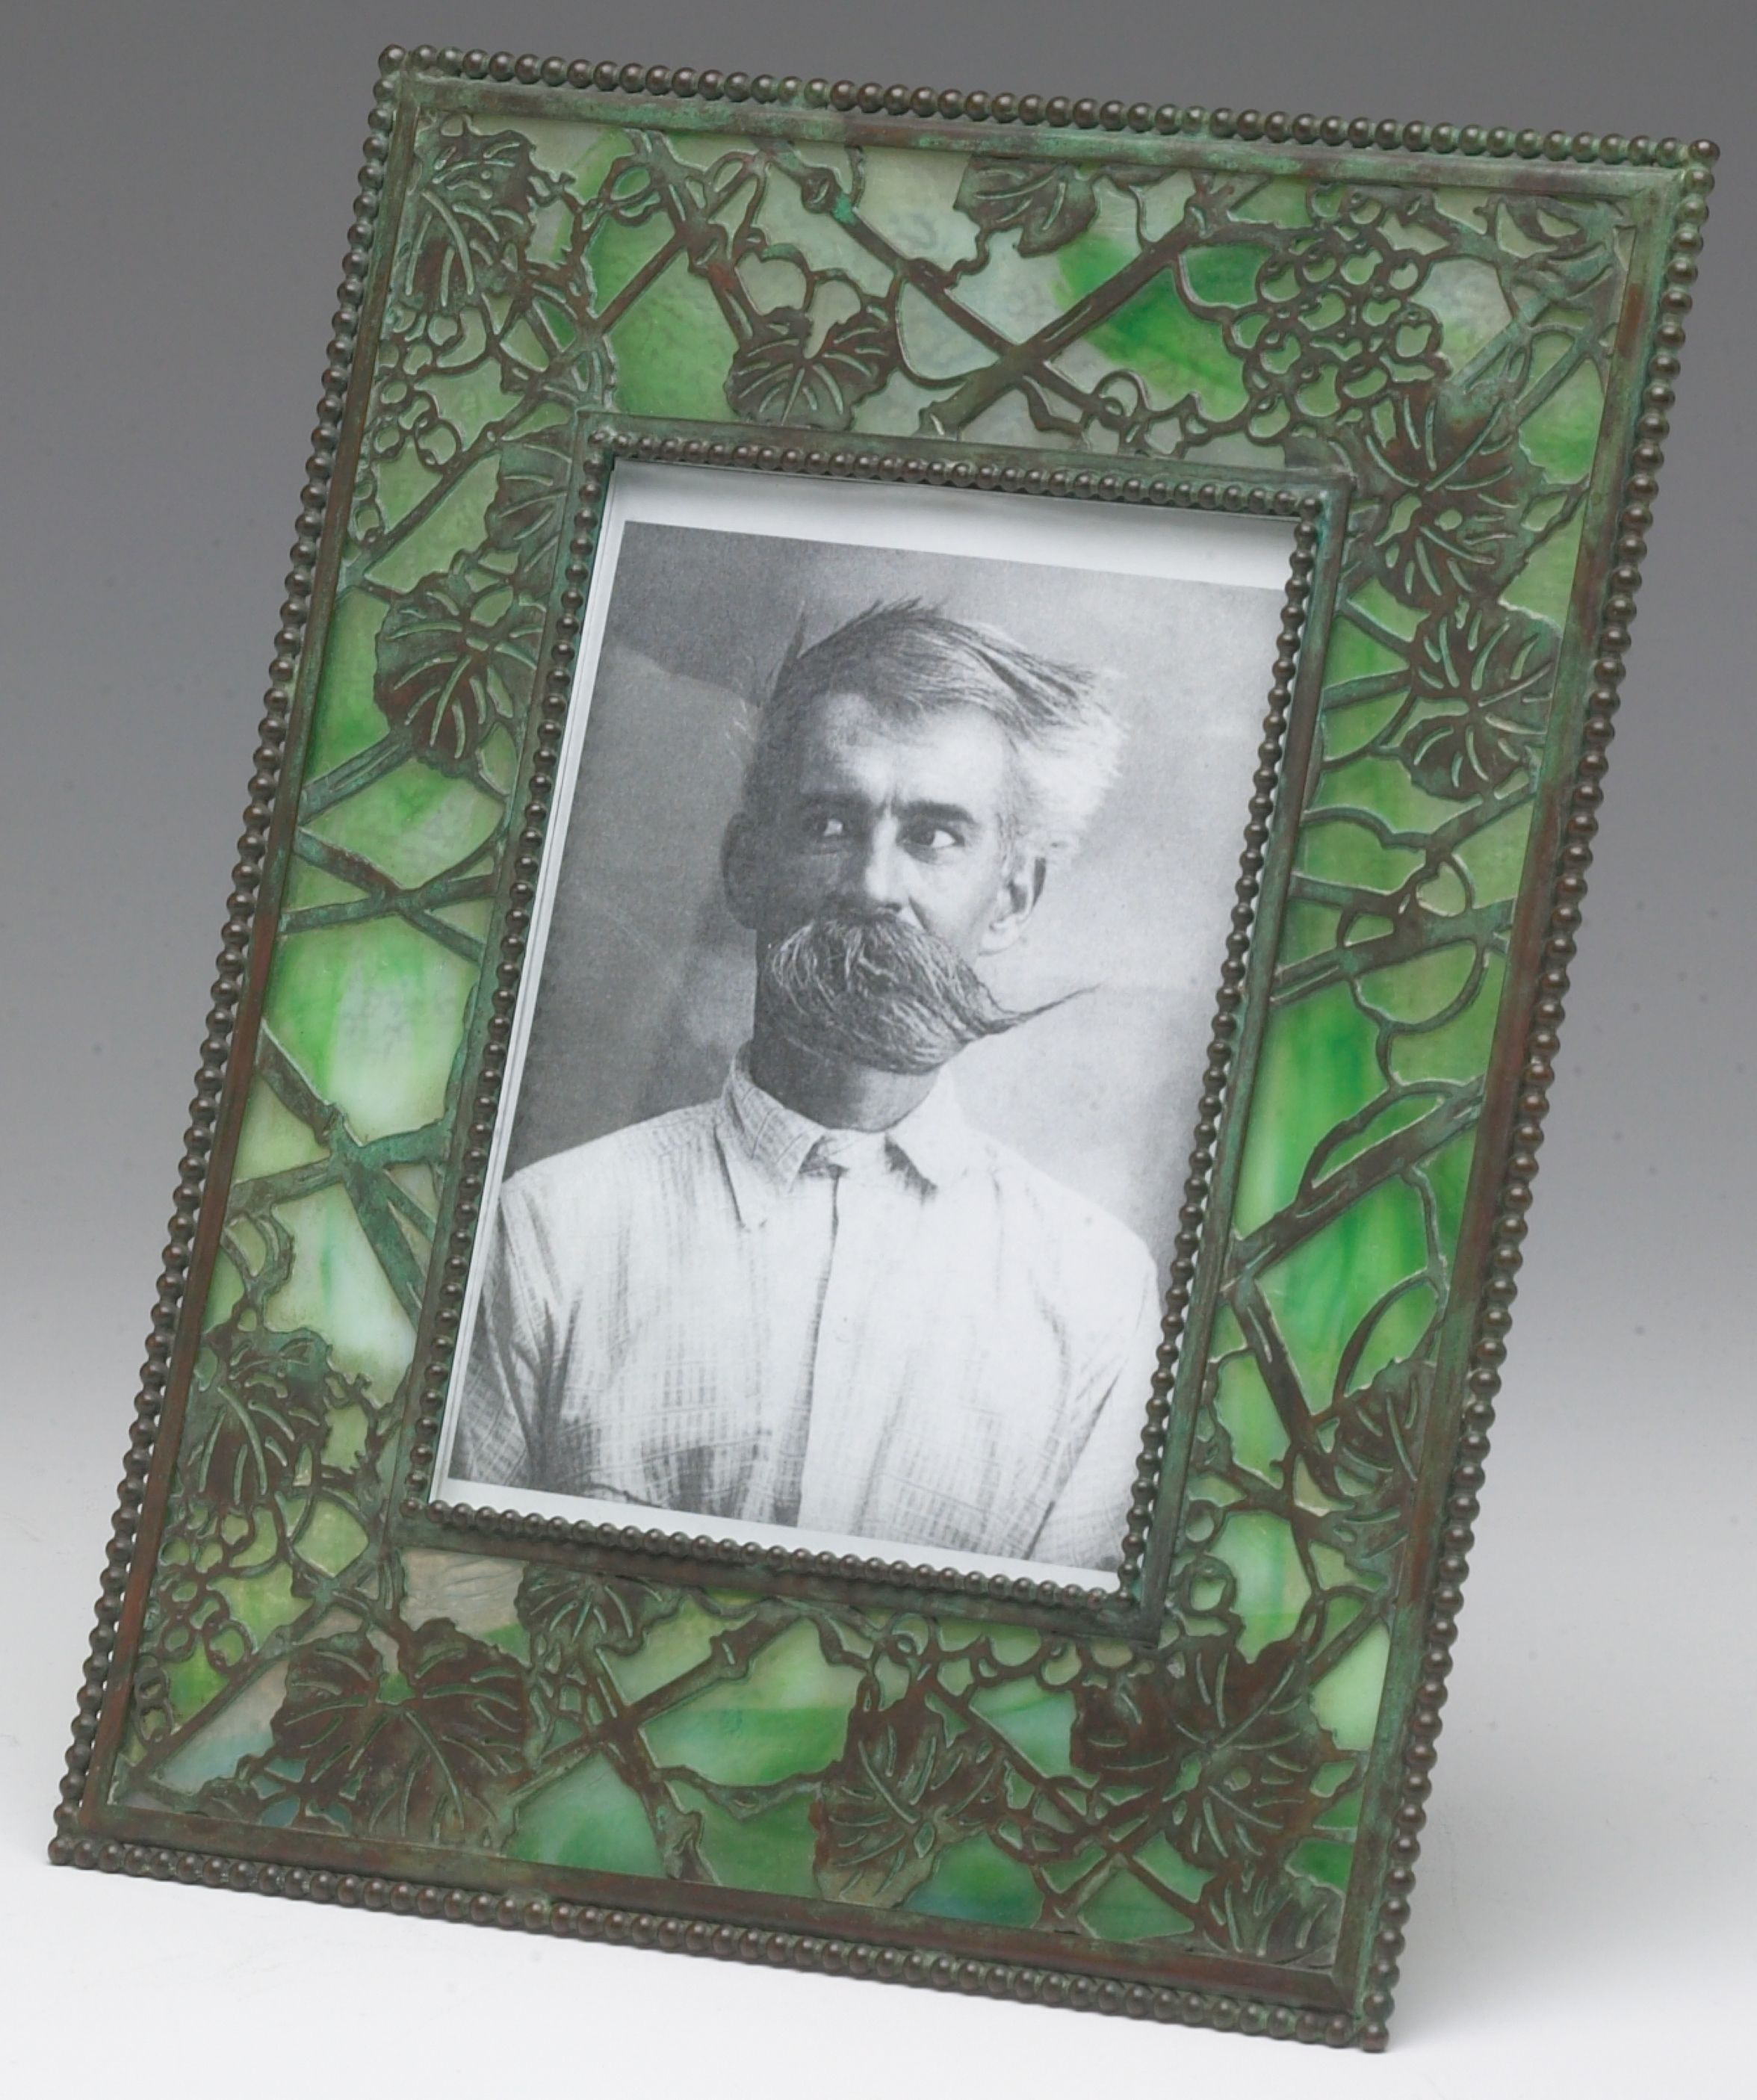 A tiffany studios new york grapevine pattern picture frame circa a tiffany studios new york grapevine pattern picture frame circa 1900 a patinated bronze tiffany studios new york etched metal glass picture frame in jeuxipadfo Image collections